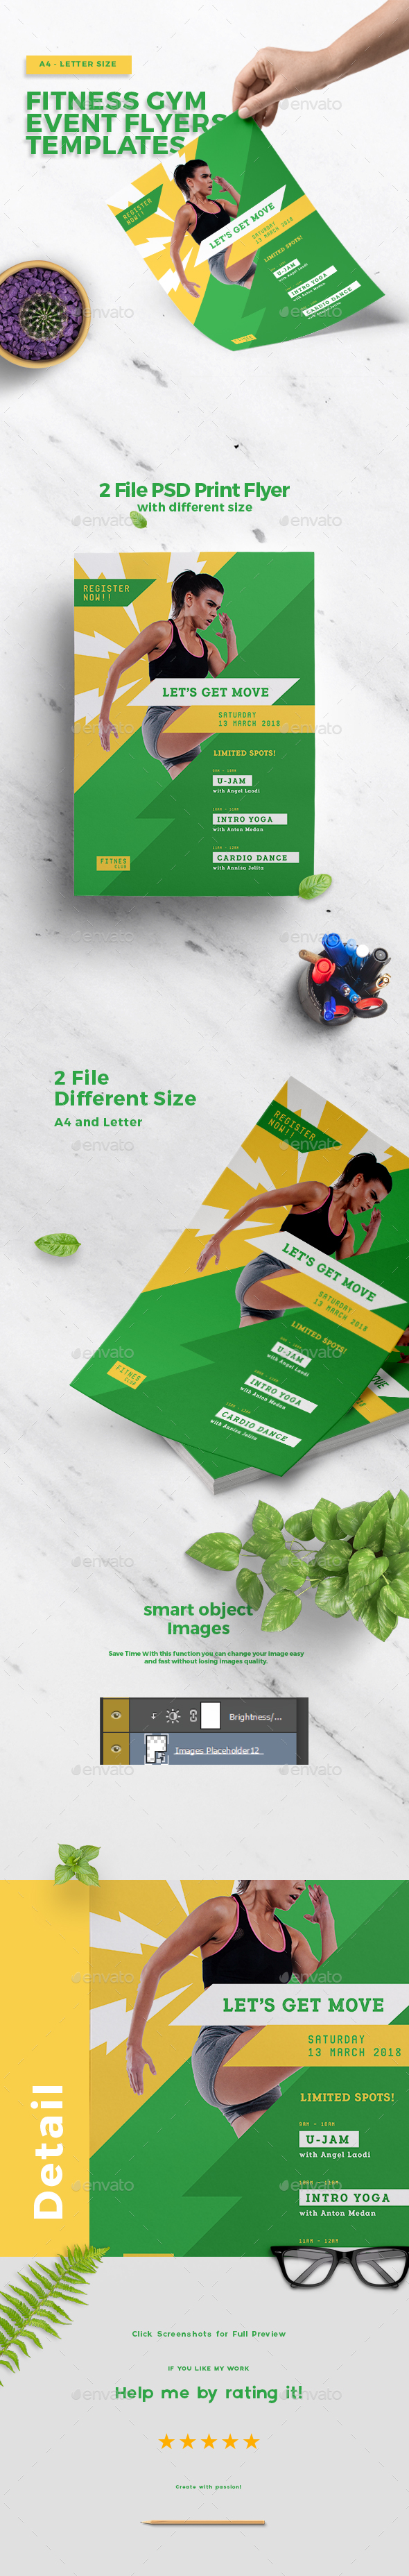 Fitness Gym Event Flyers Templates - Sports Events